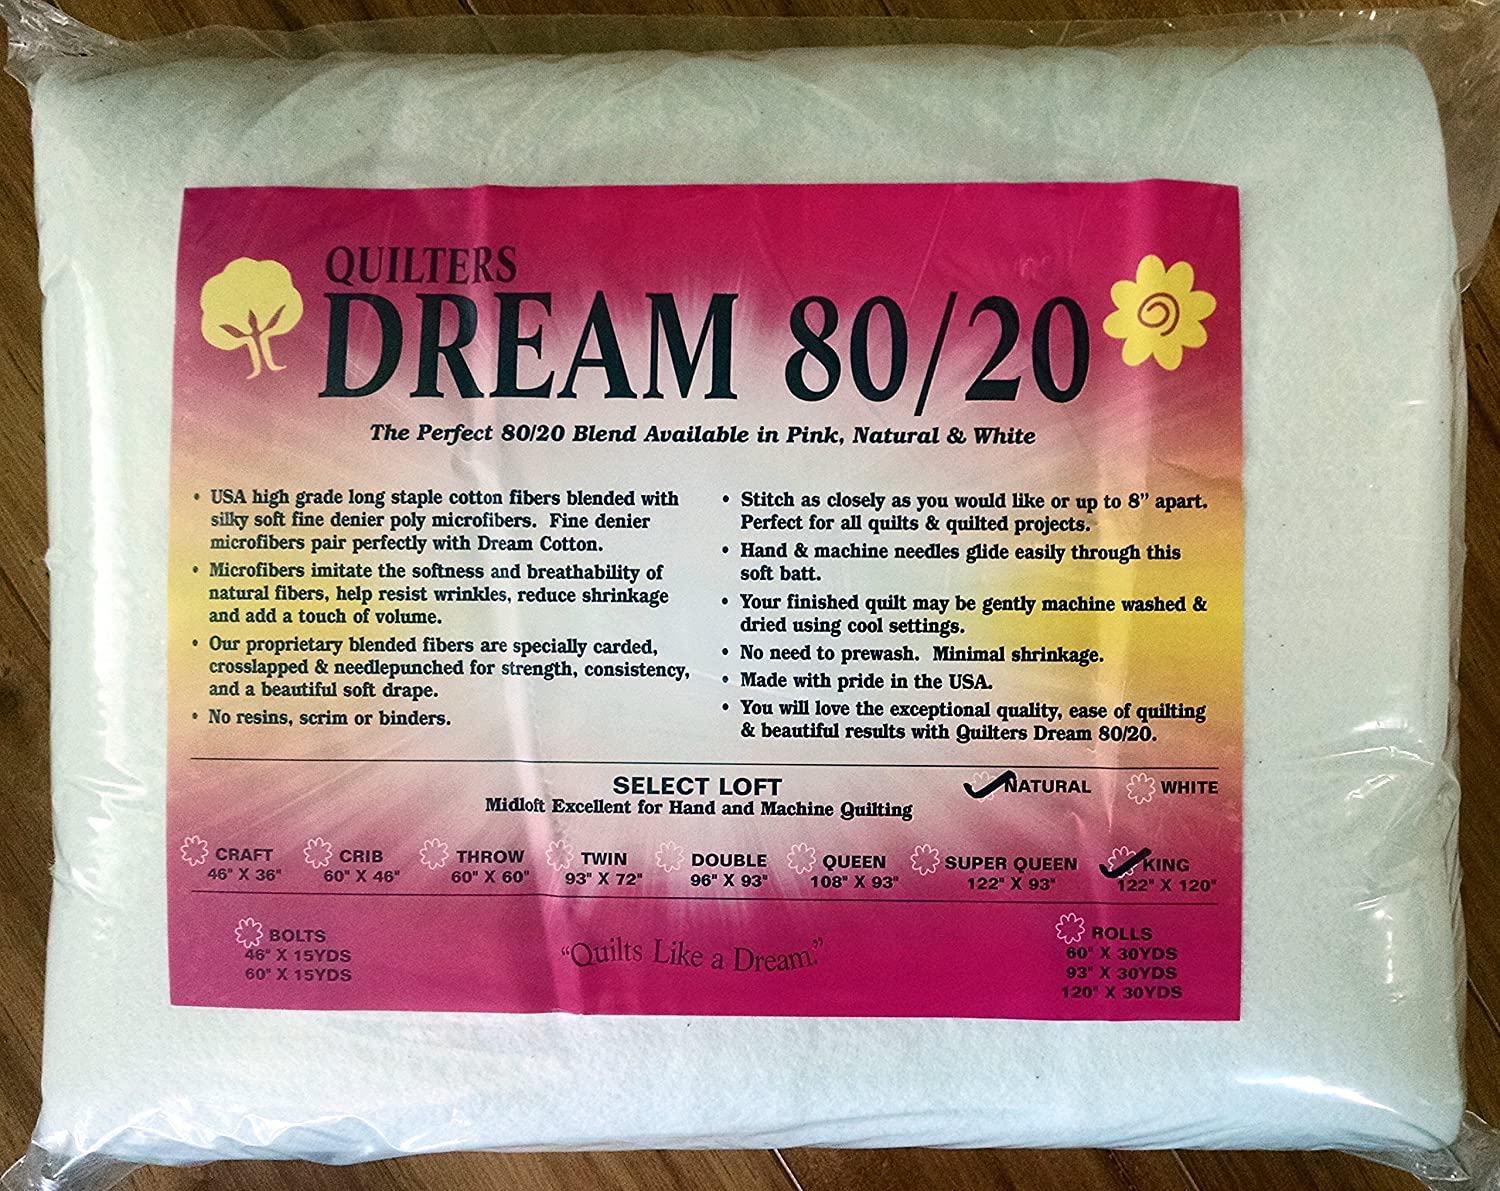 Quilter's Dream 80/20, Natural, Select Loft Batting - King Size 122X120 Quilter' s Dream 80/20 ENK